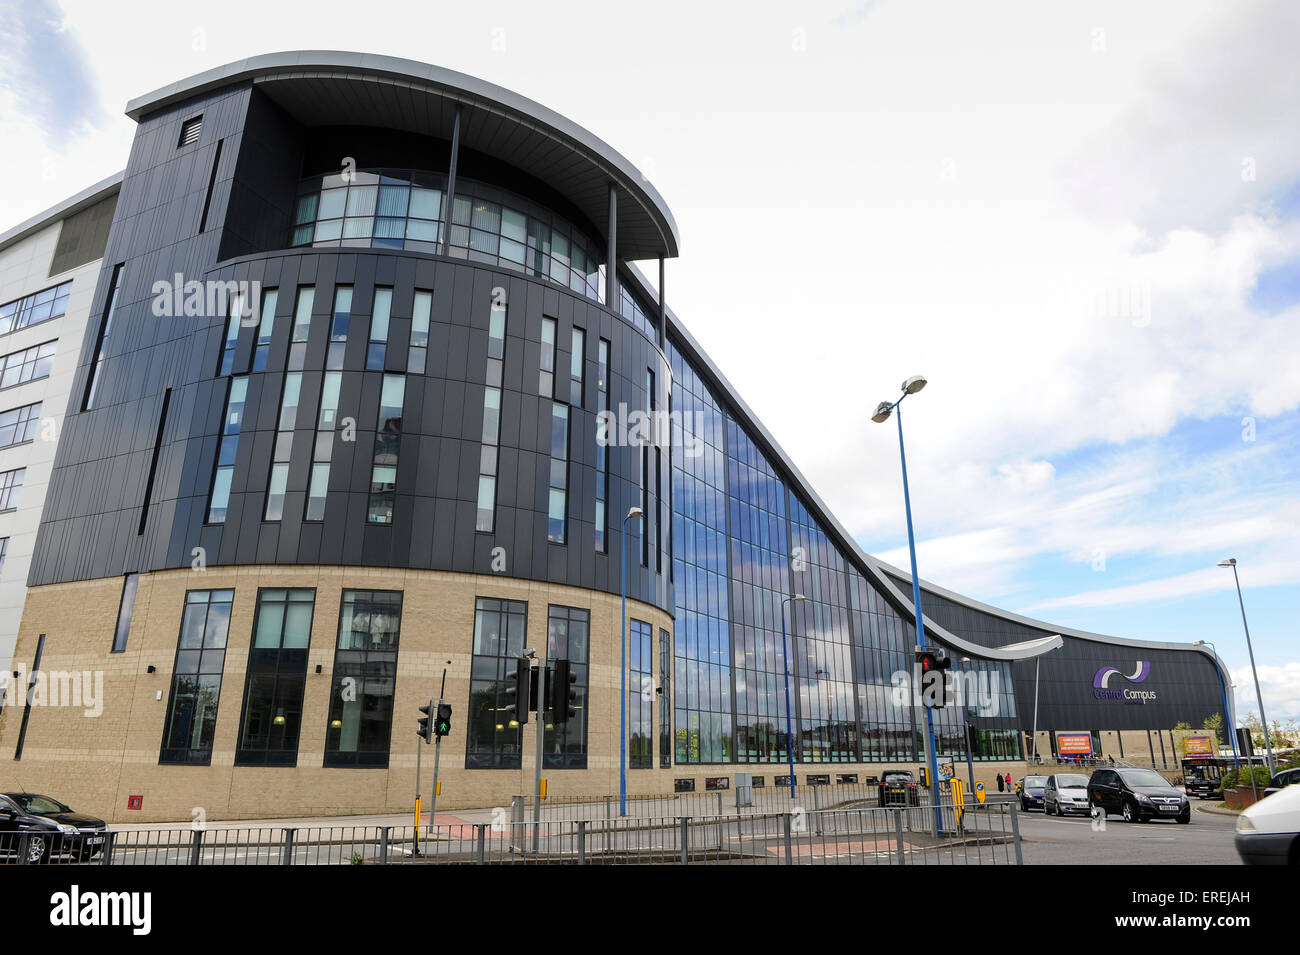 Architectural design of central campus at Sandwell College - Stock Image